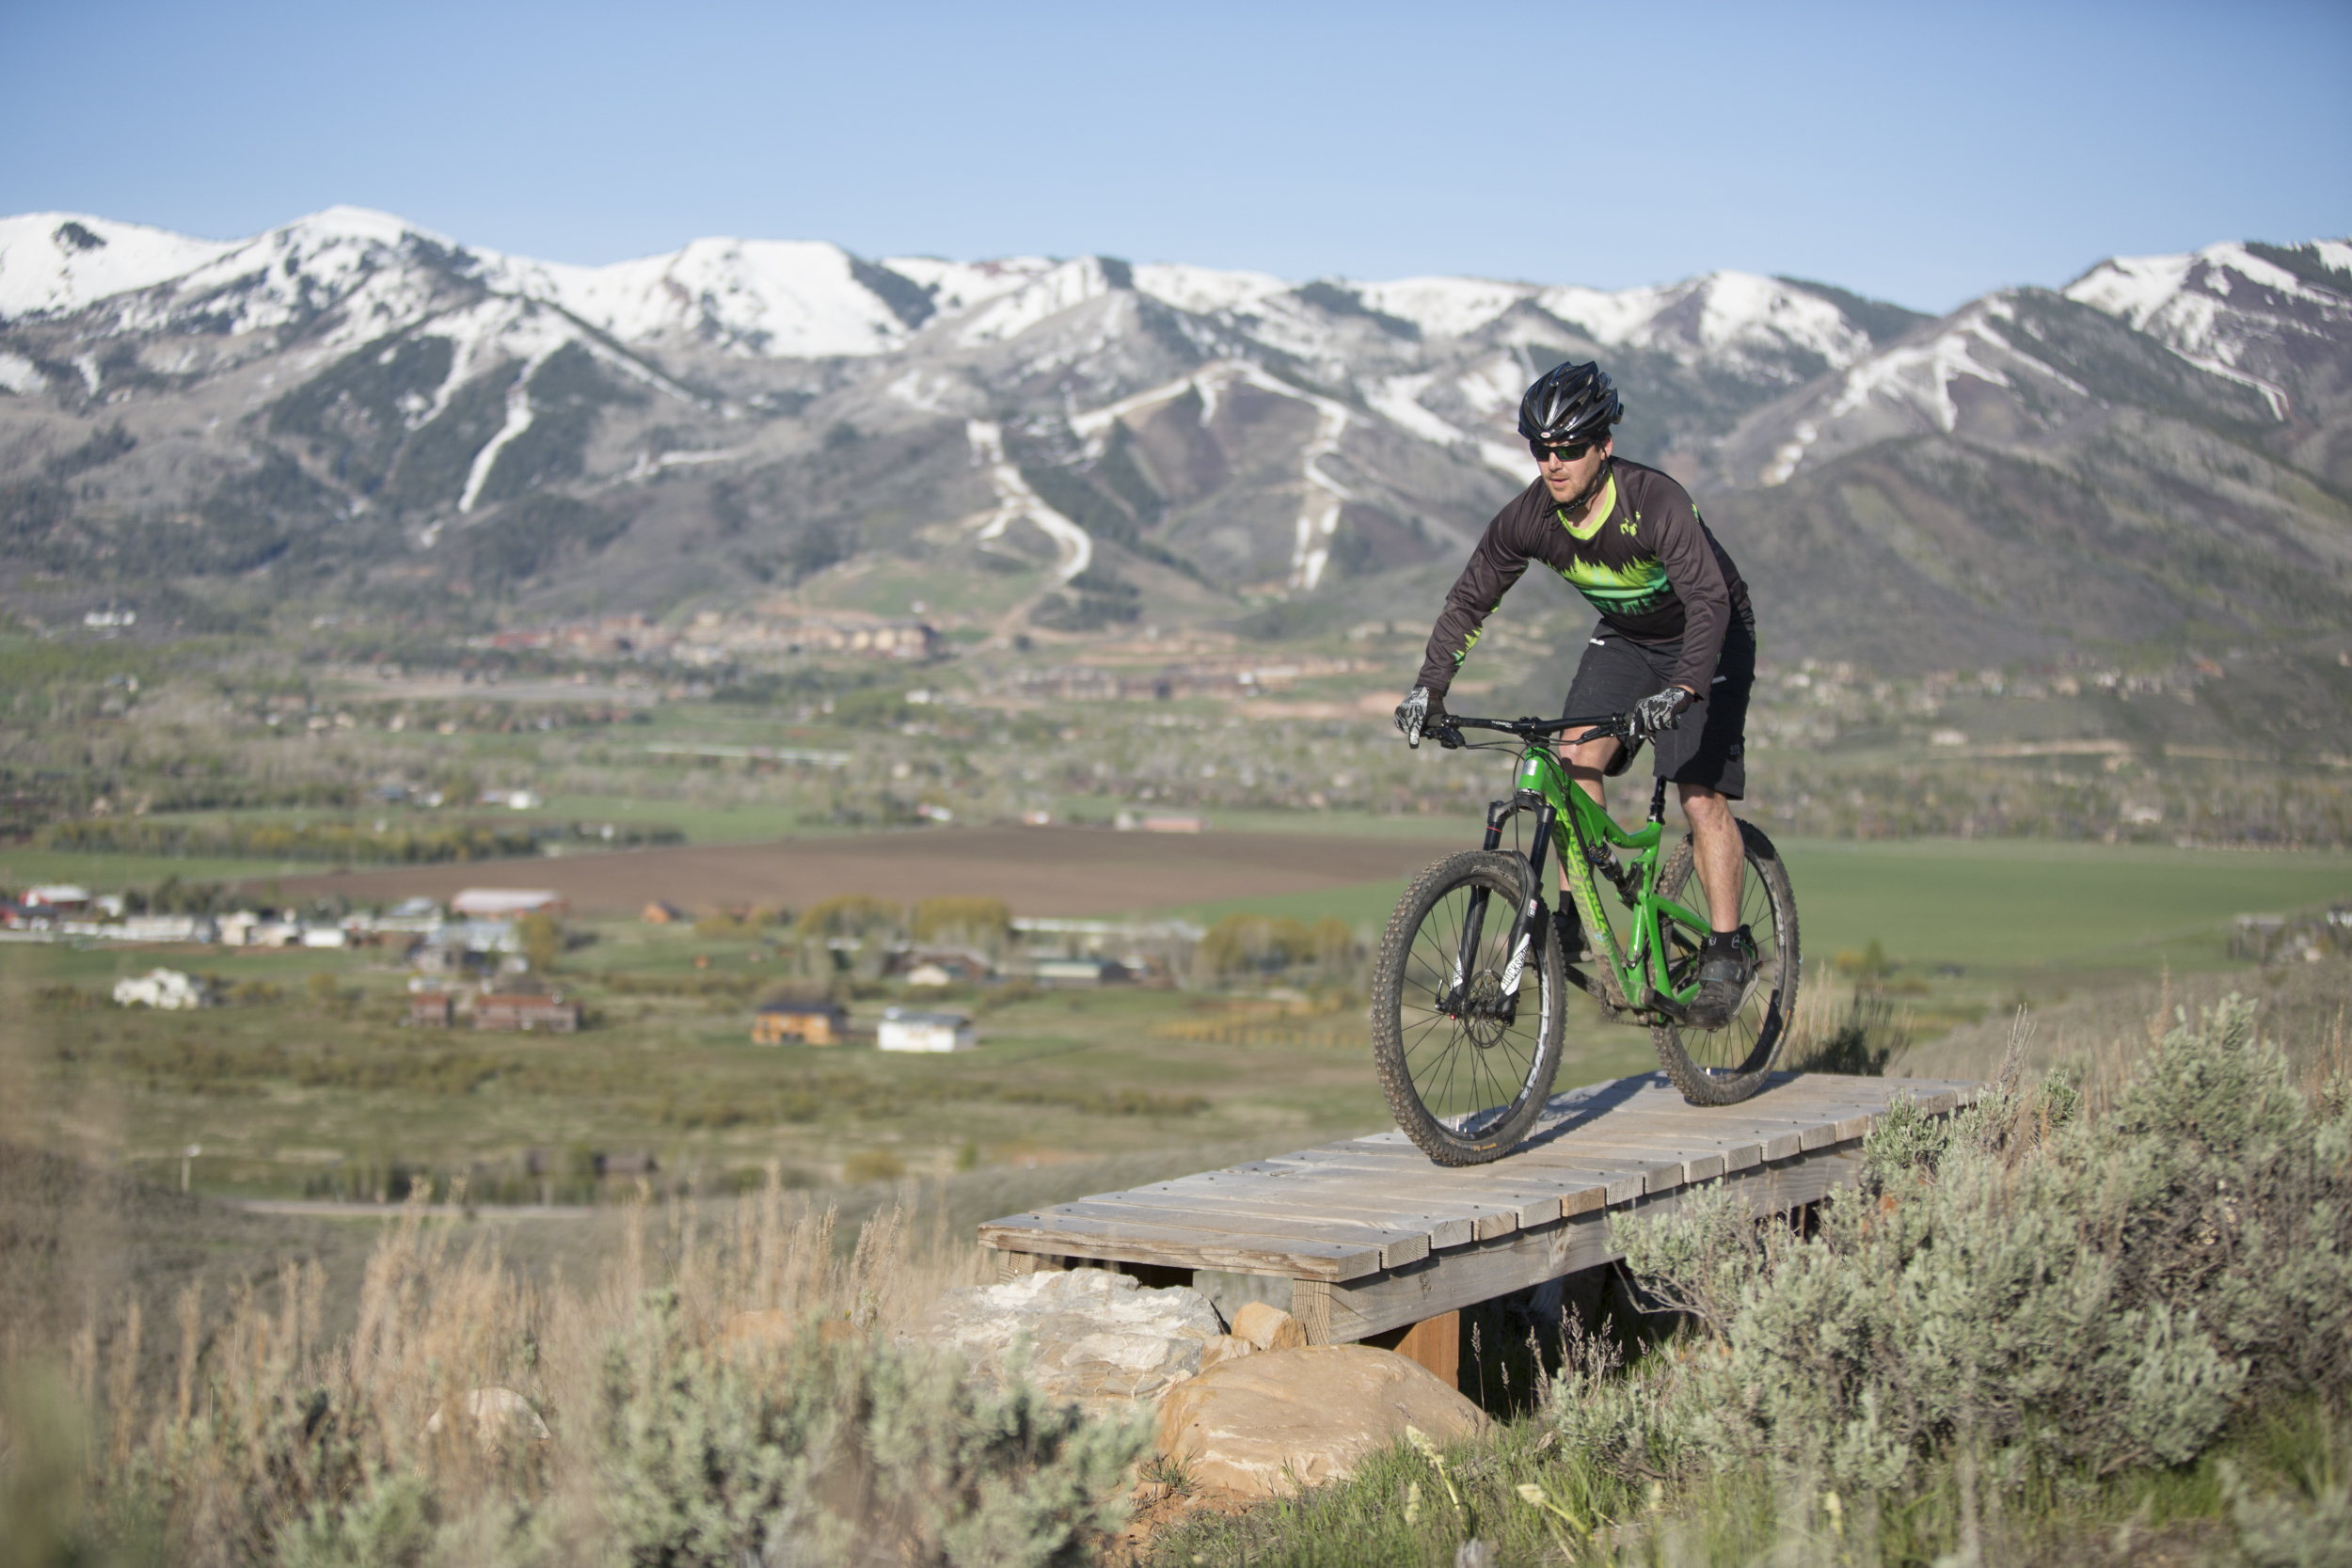 Donald West, Owner of Wasatch Trails Company